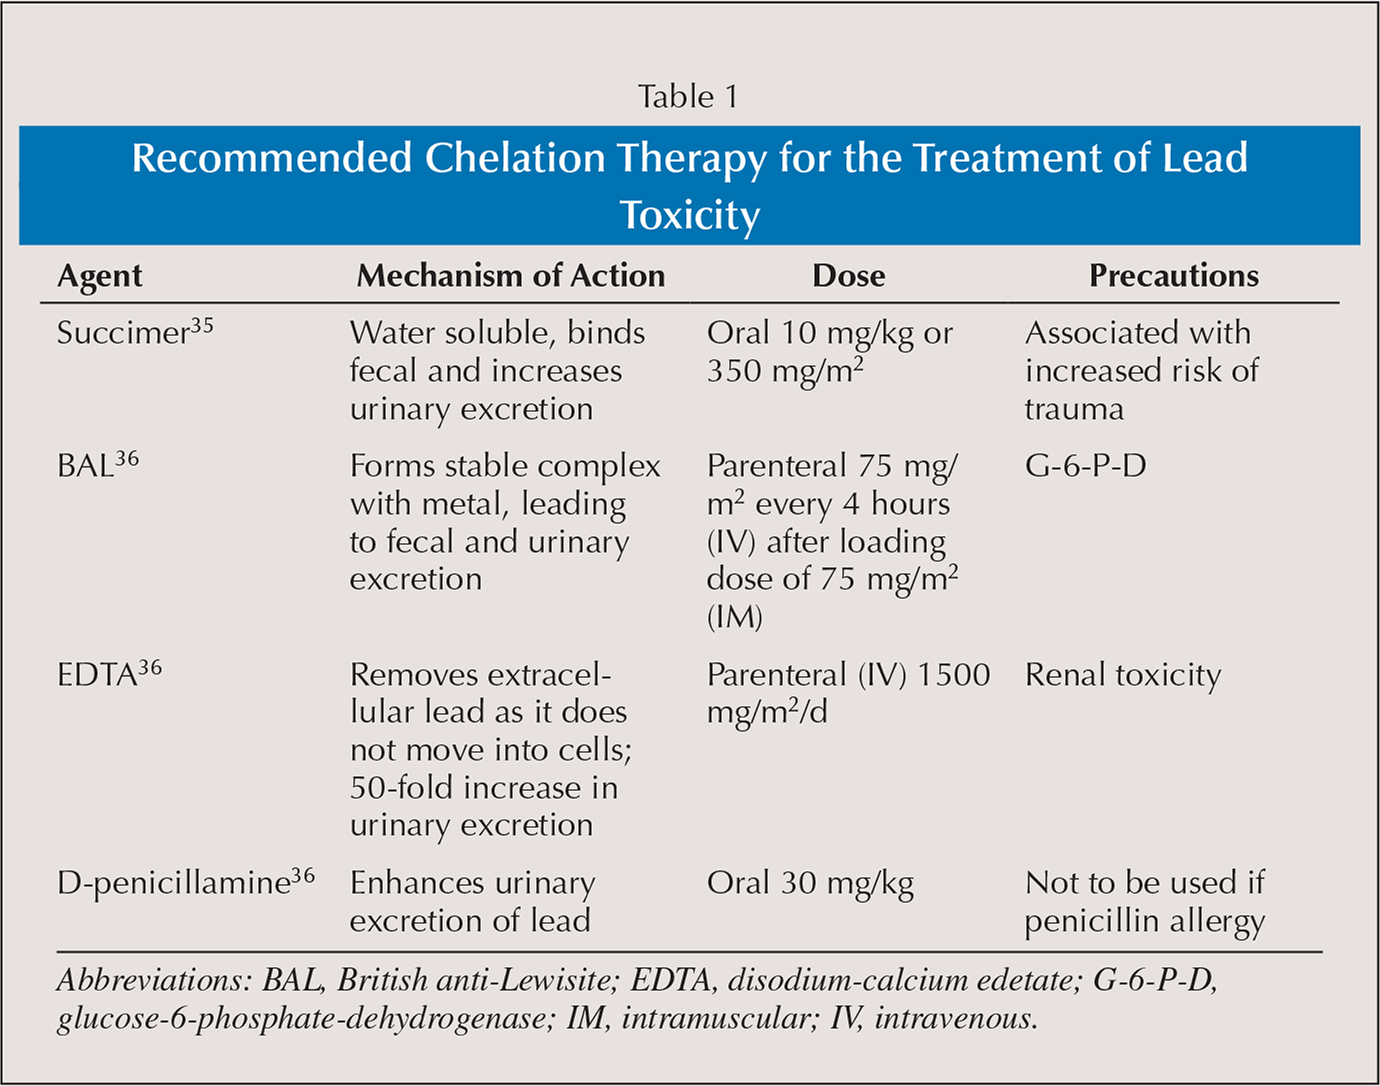 Recommended Chelation Therapy for the Treatment of Lead Toxicity